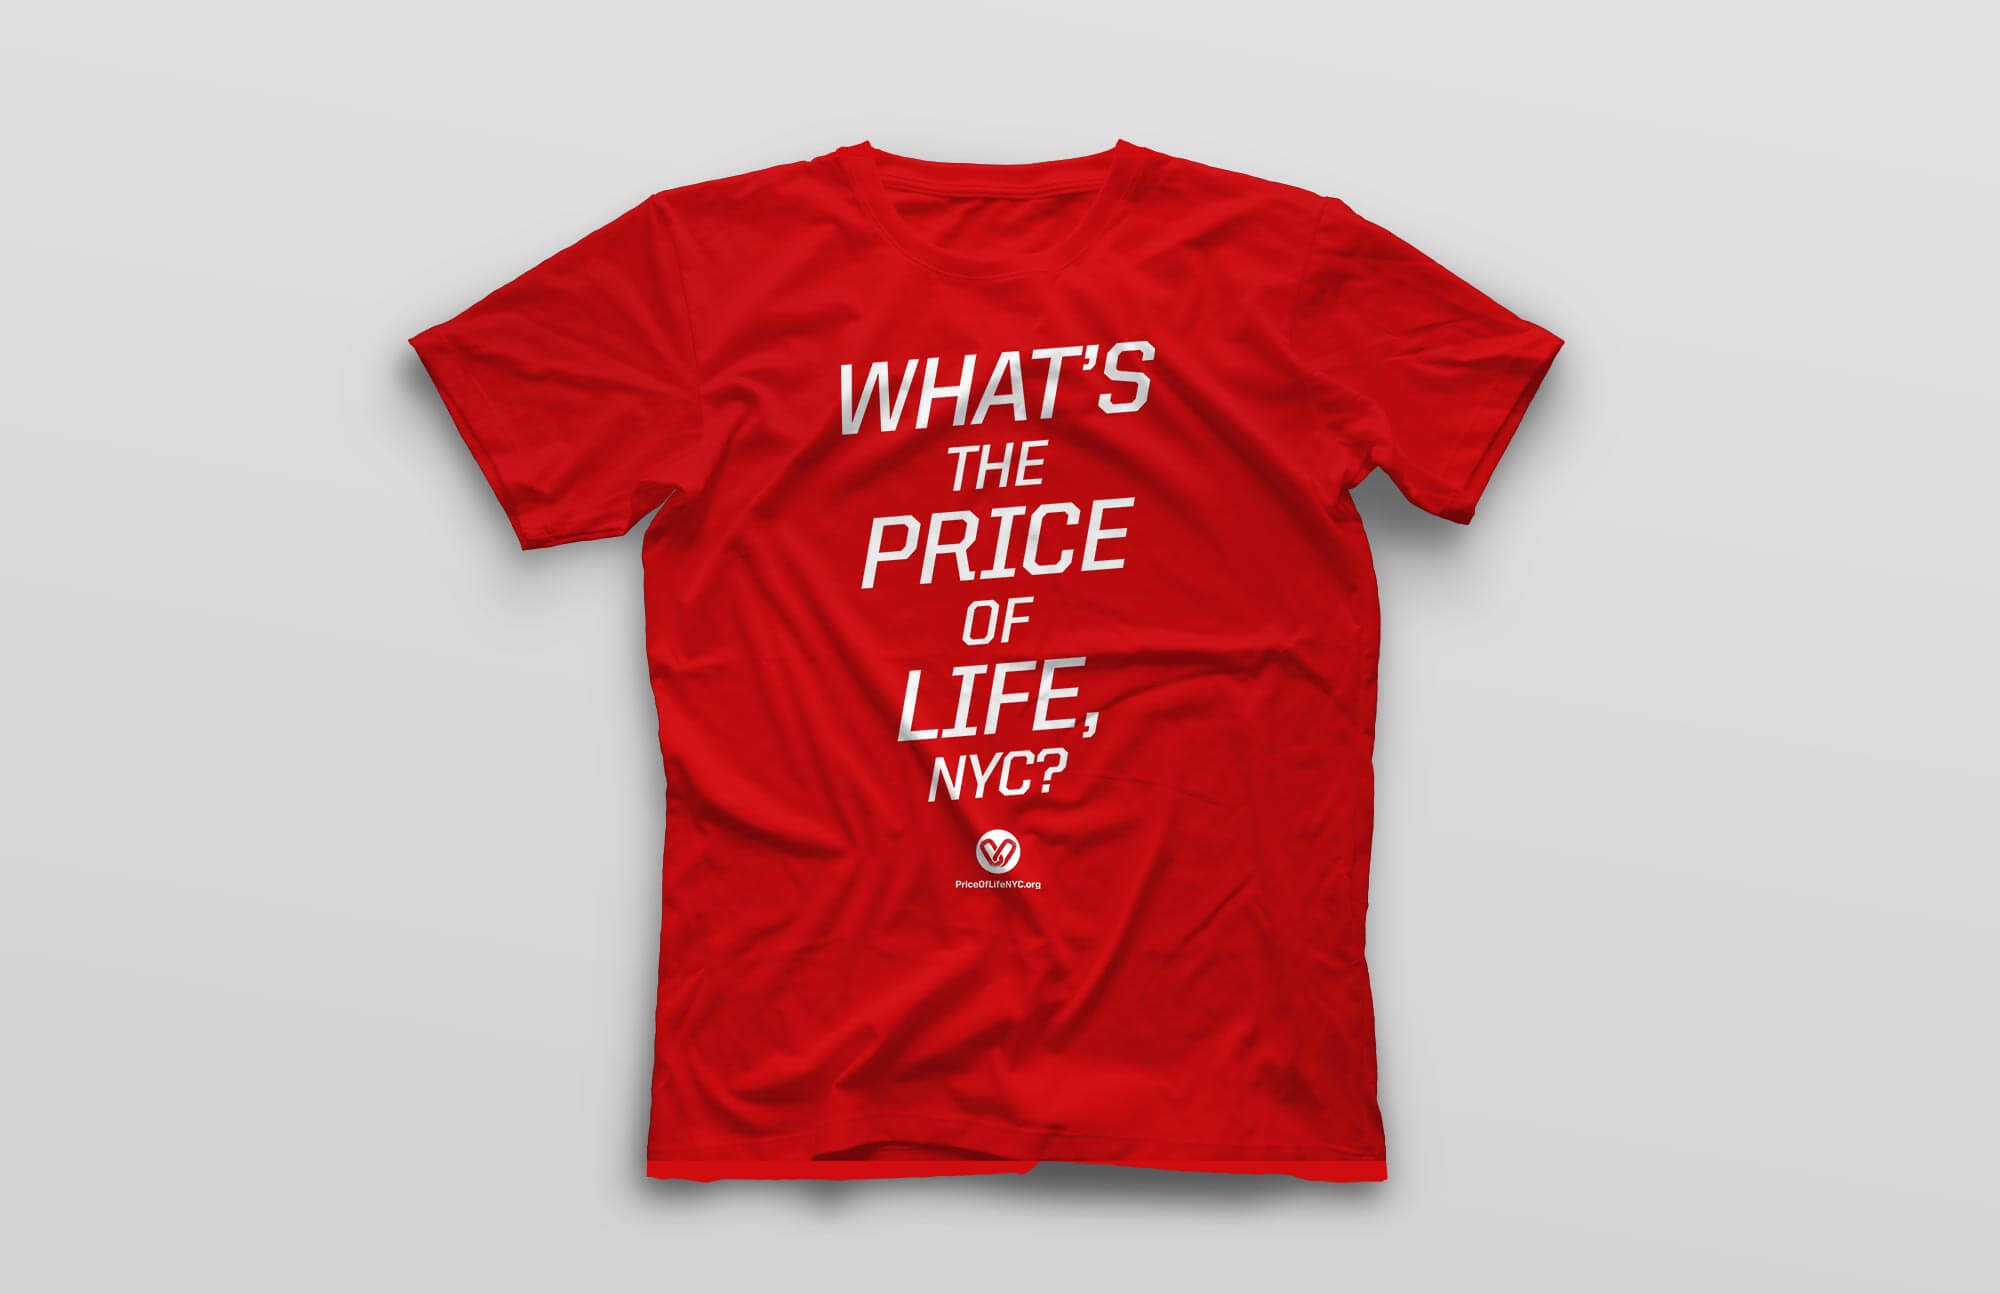 intervarsity-the-price-of-life-shirt